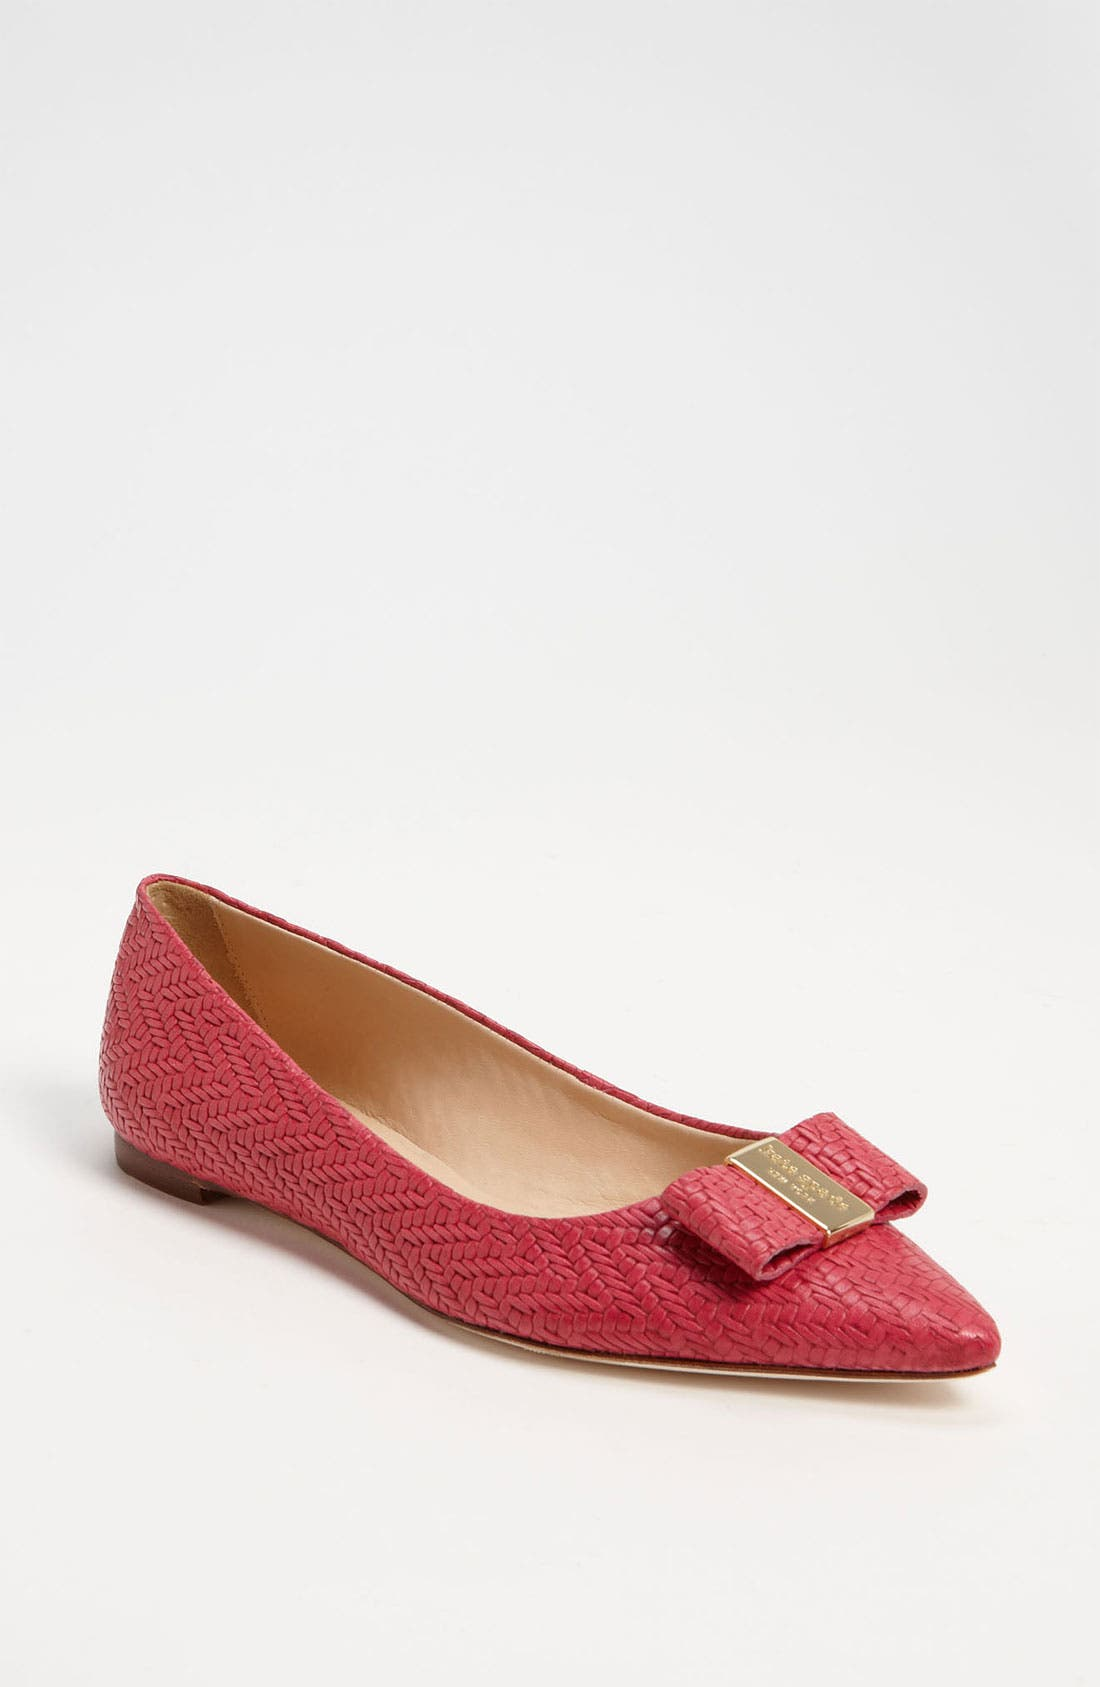 Alternate Image 1 Selected - kate spade new york 'gabriella' flat